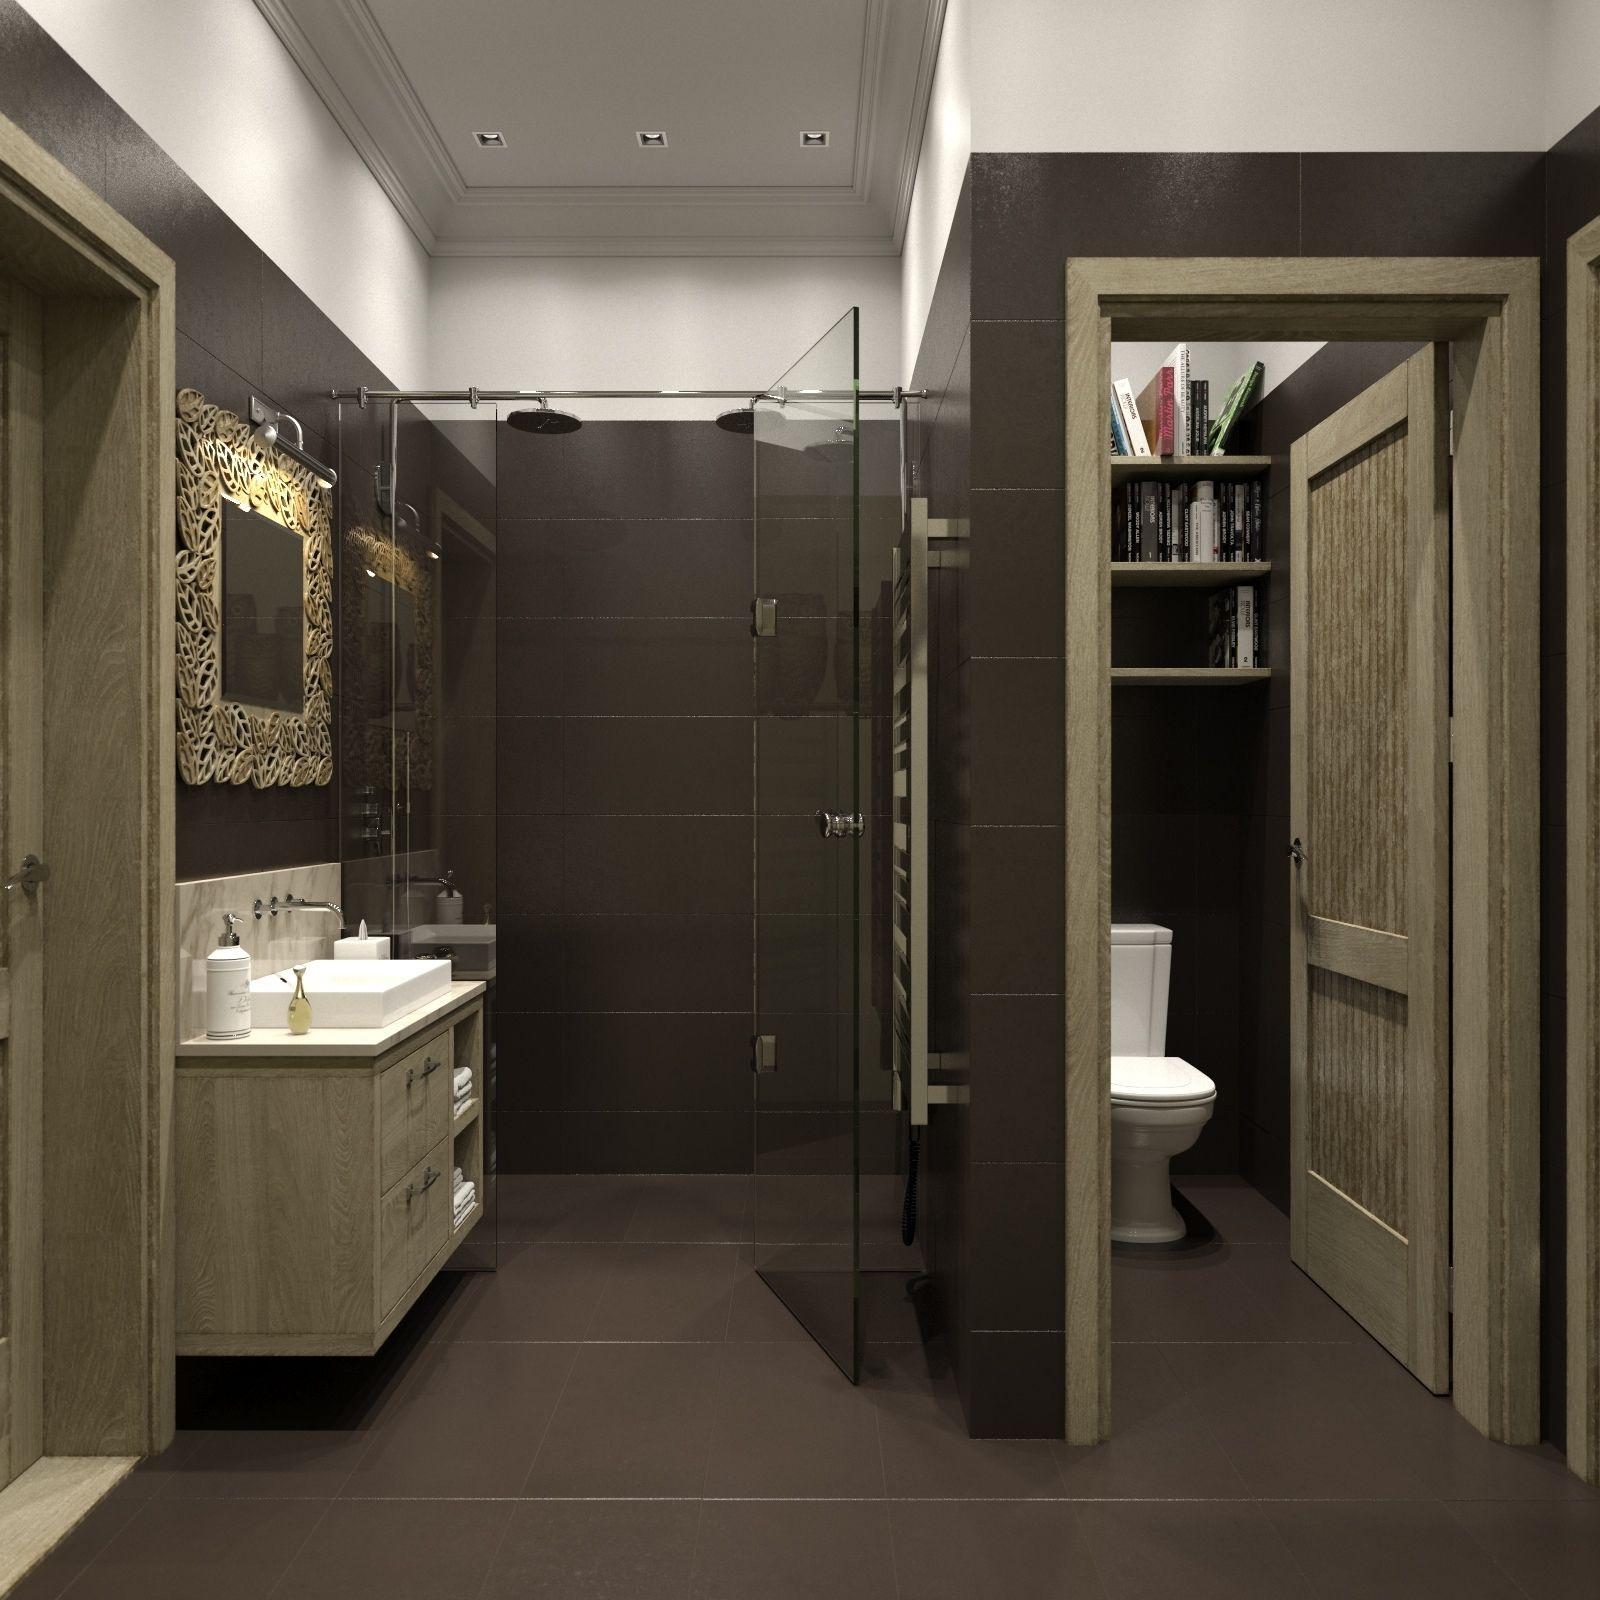 Modern Bathroom Design Ideas With Minimalist And Trendy Tips In Decorating Looks So Attractive